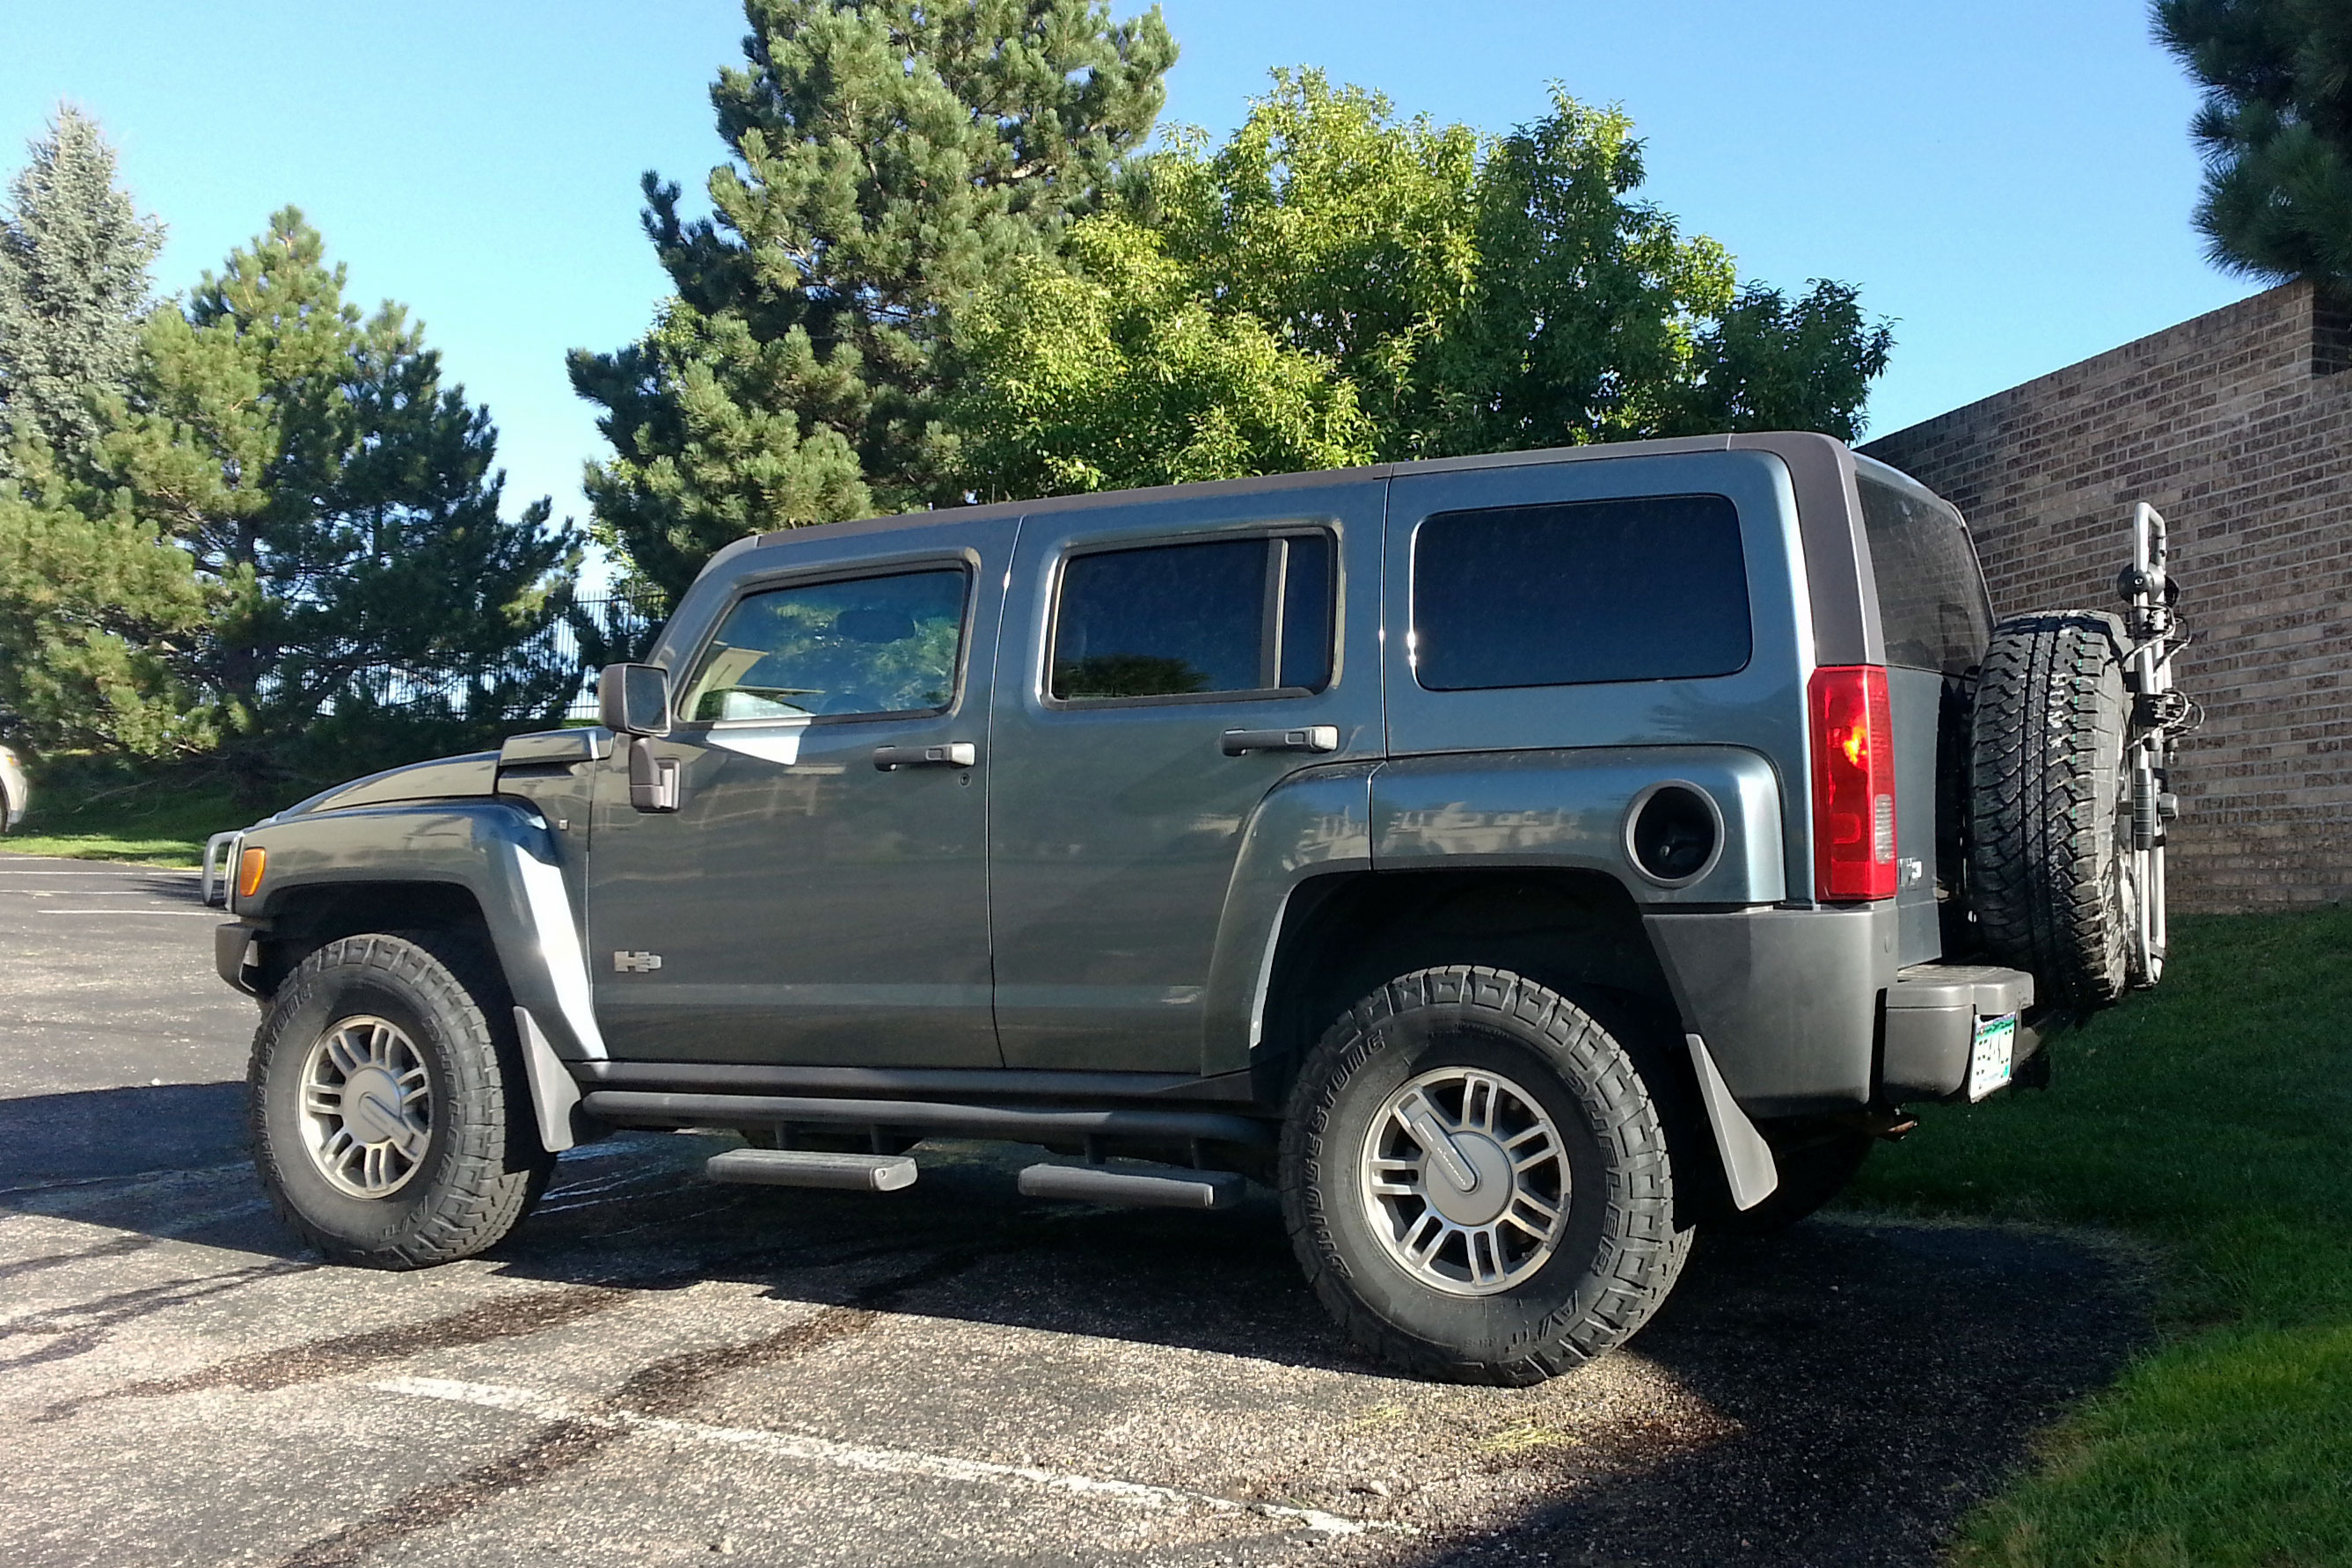 2006 Hummer H3 Adventure Package with Blown Engine miles